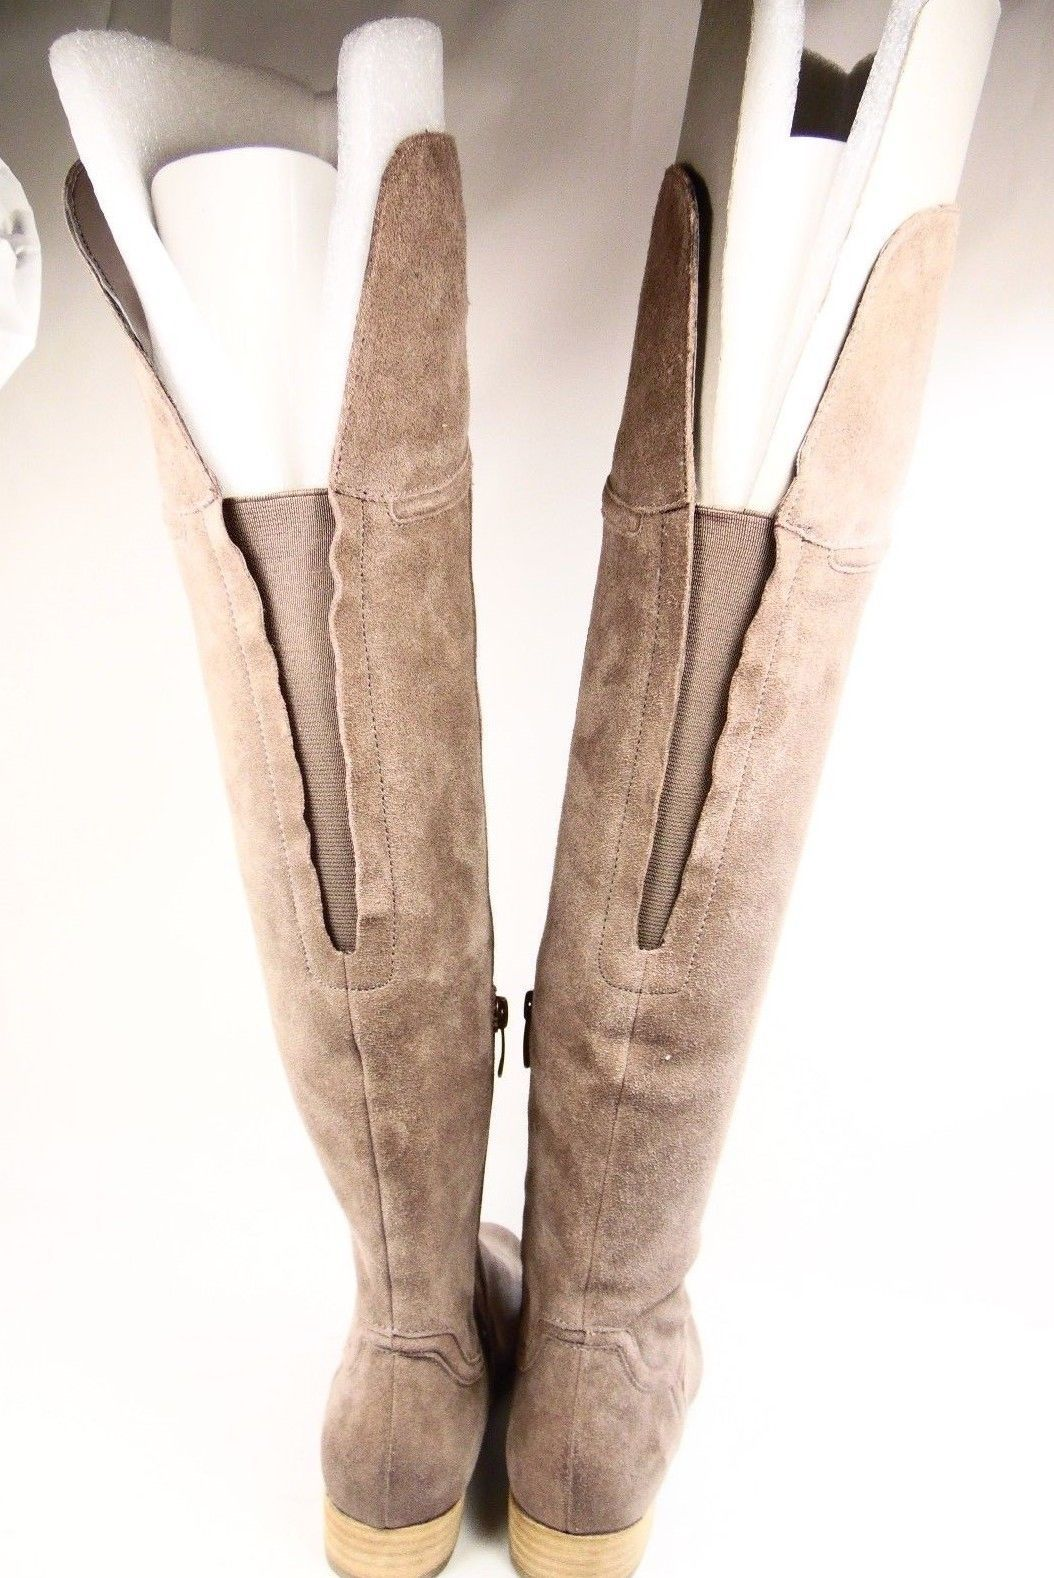 d341ec64792 ENZO ANGIOLINI MALACI Womens High Boots Suede Leather Taupe Size 6.5M